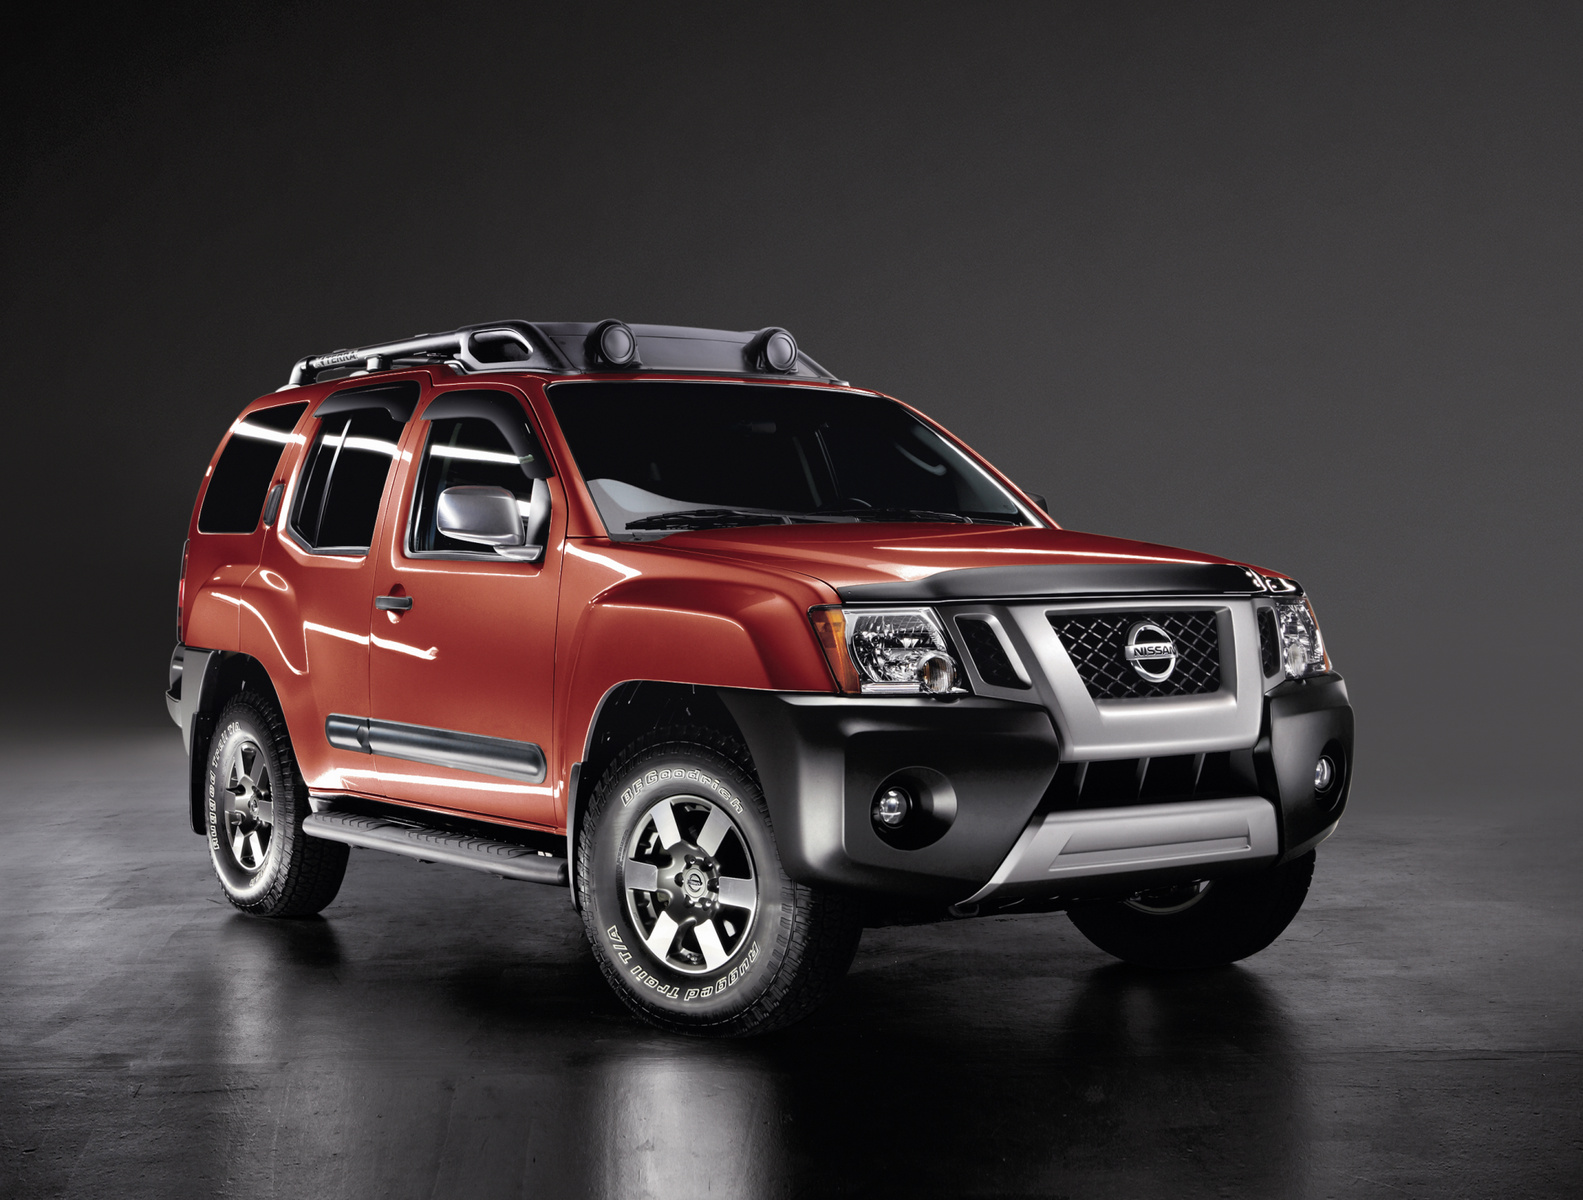 2013 nissan xterra redesign gallery hd cars wallpaper 2013 nissan xterra information and photos zombiedrive 2013 nissan xterra 18 nissan xterra 18 vanachro gallery vanachro Choice Image